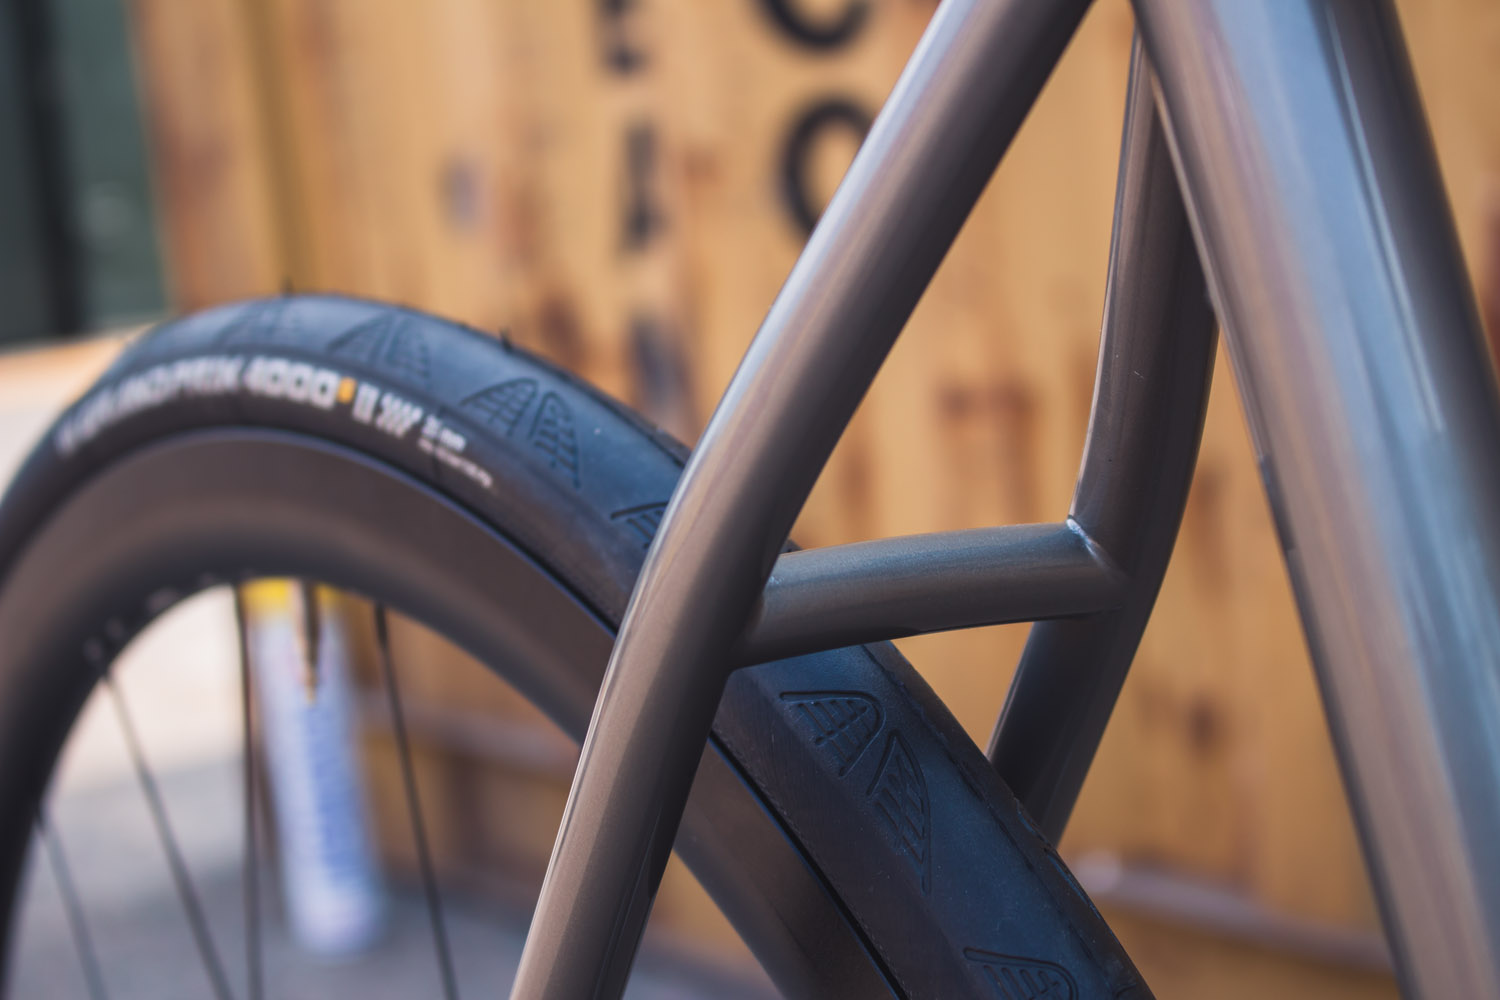 quirk_cycles_rich_mallet_road_05.jpg